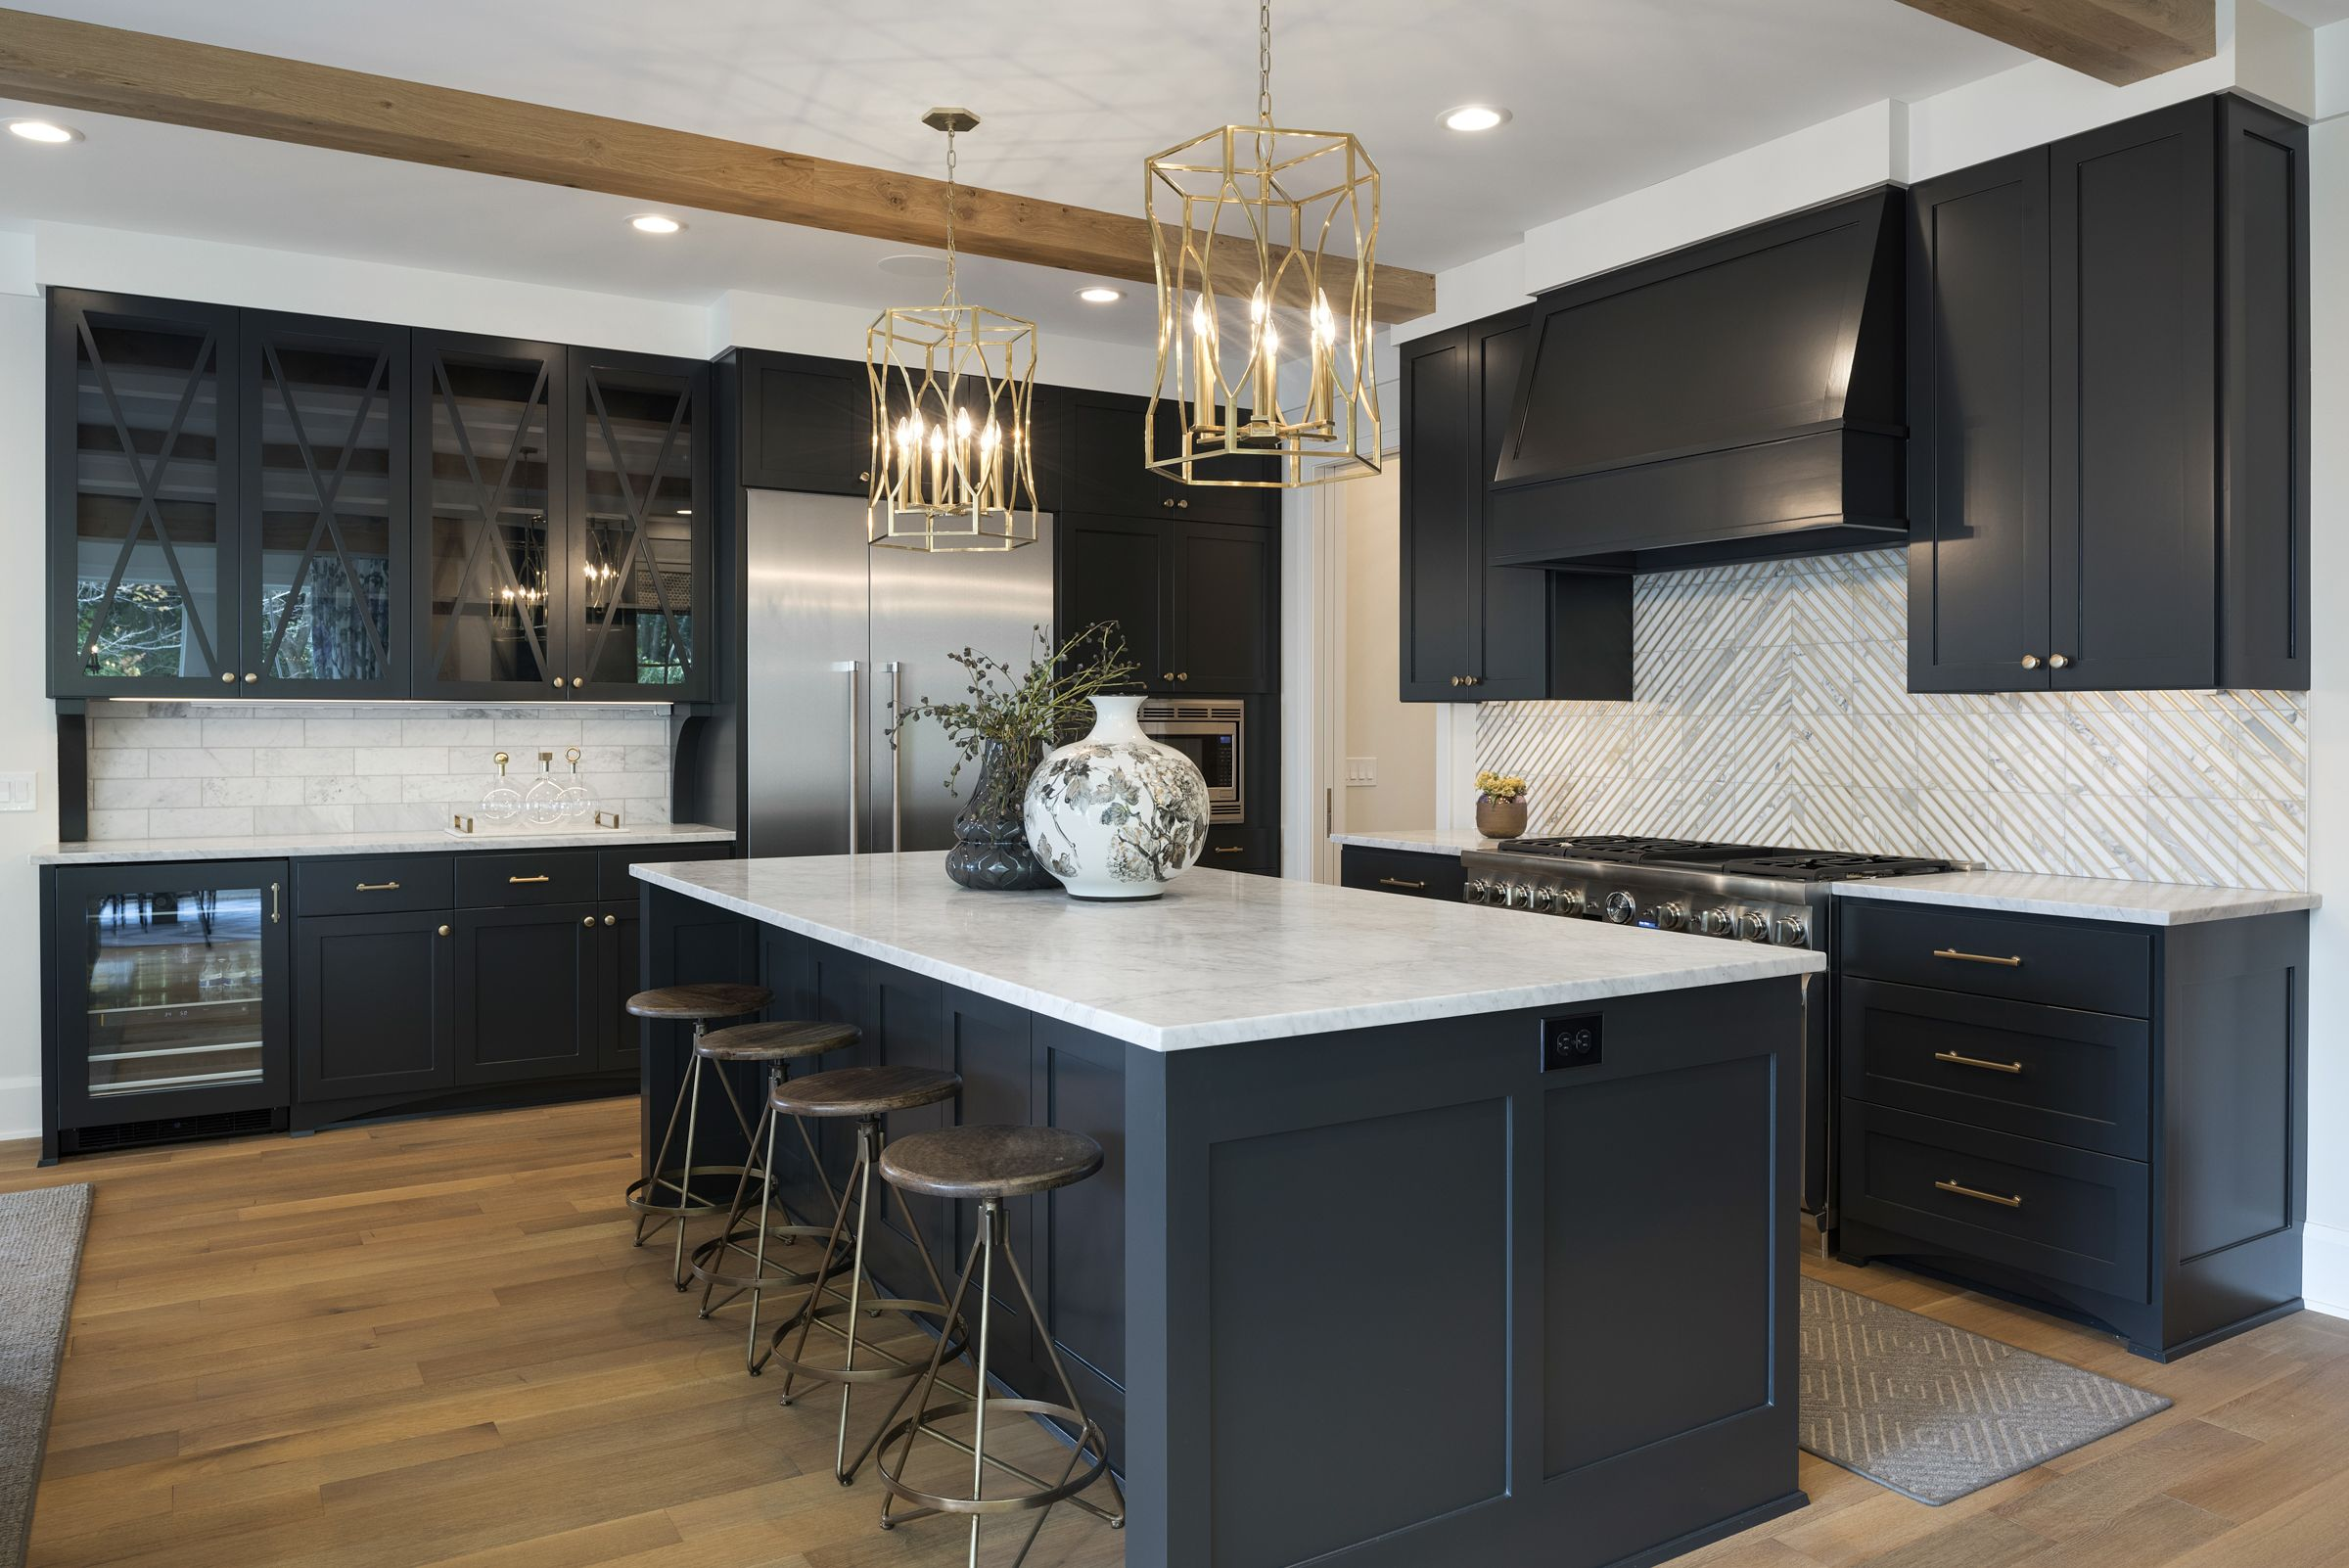 Black Kitchen With Marble Countertops Dining Room Wainscoting Wainscoting Kitchen Rustic Kitchen